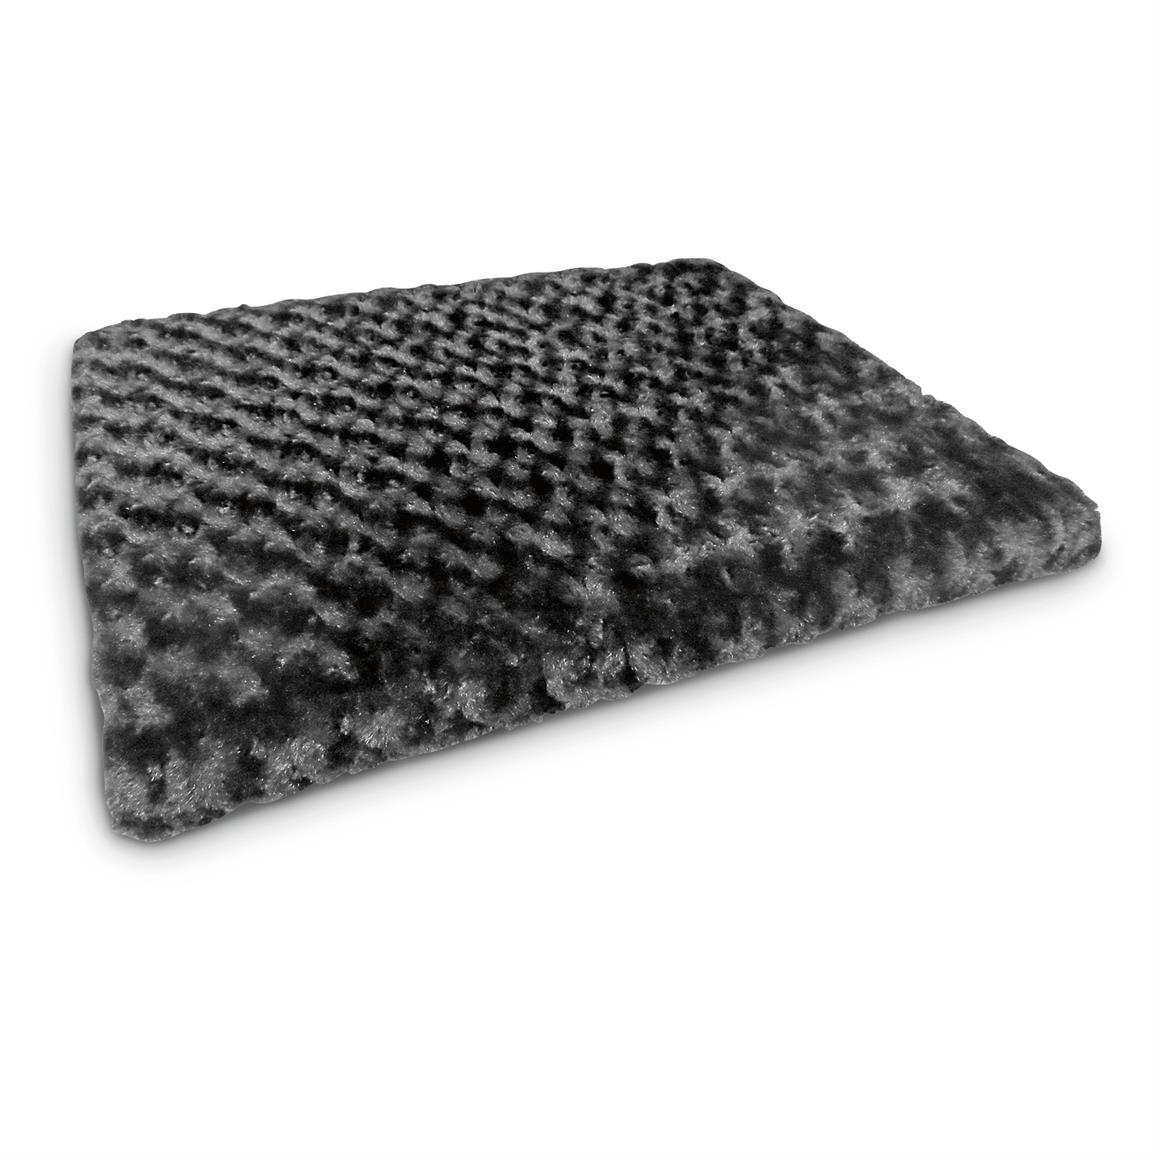 Tobey Orthopedic Memory Foam Pet Bed, Black